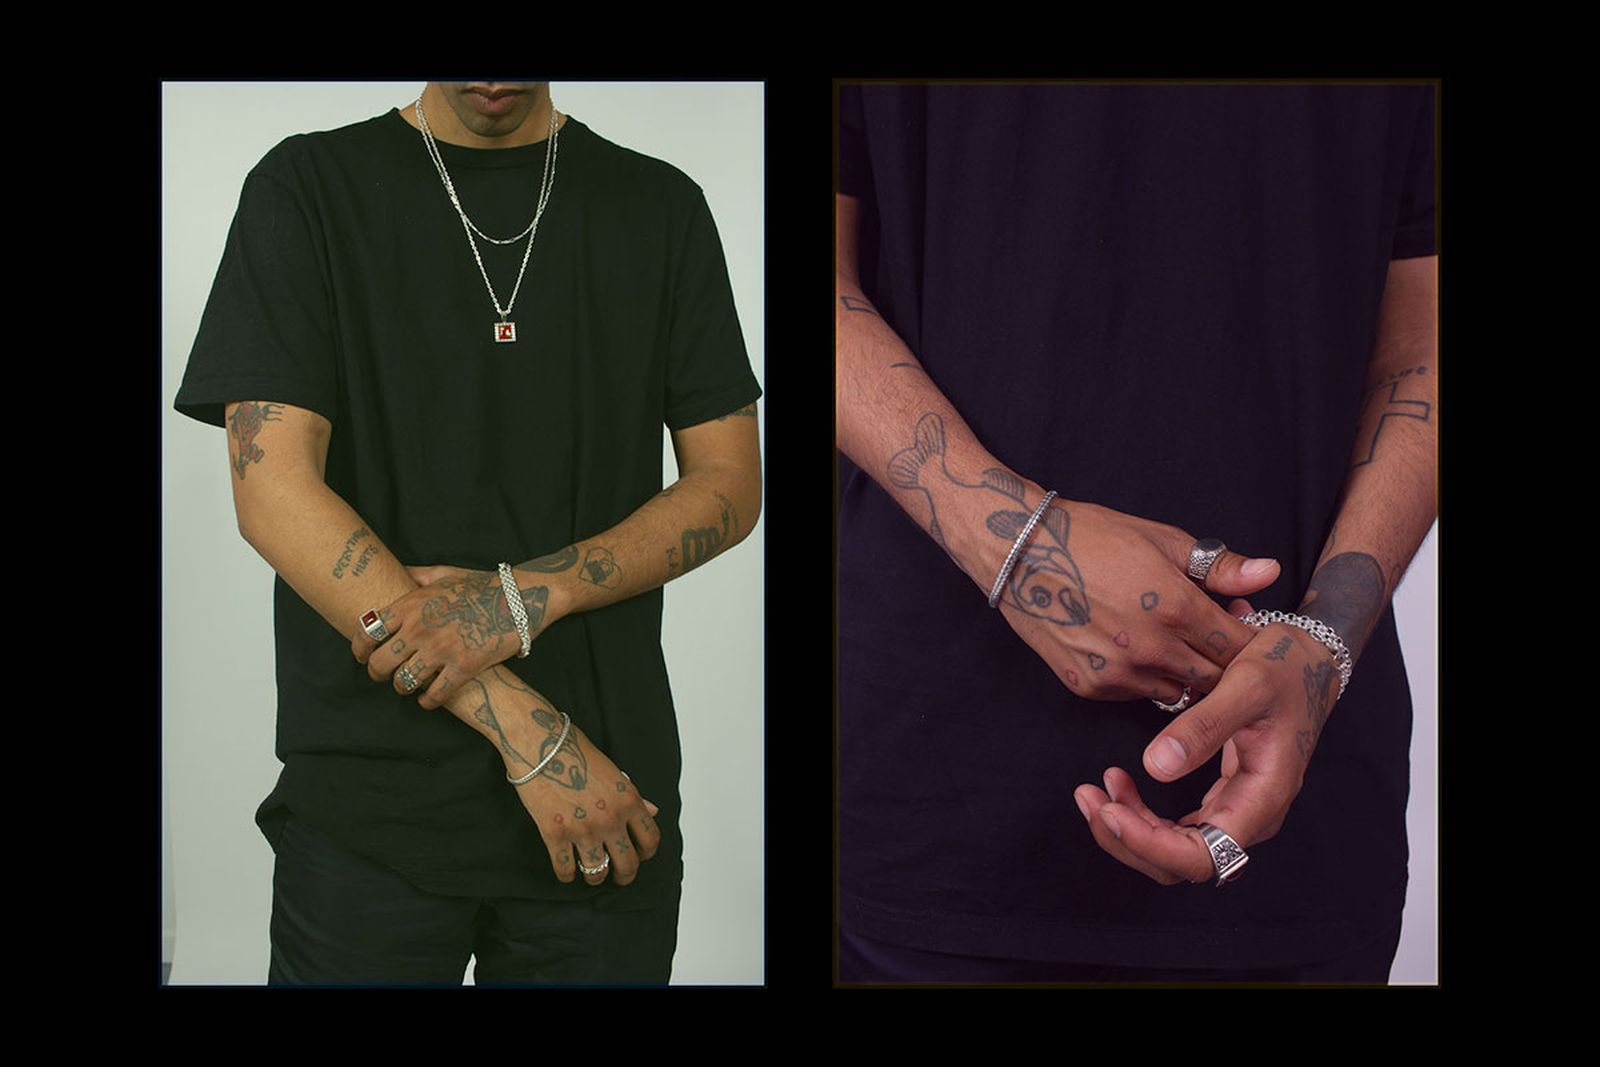 MAPLE fw19 silver jewelry on tatted model